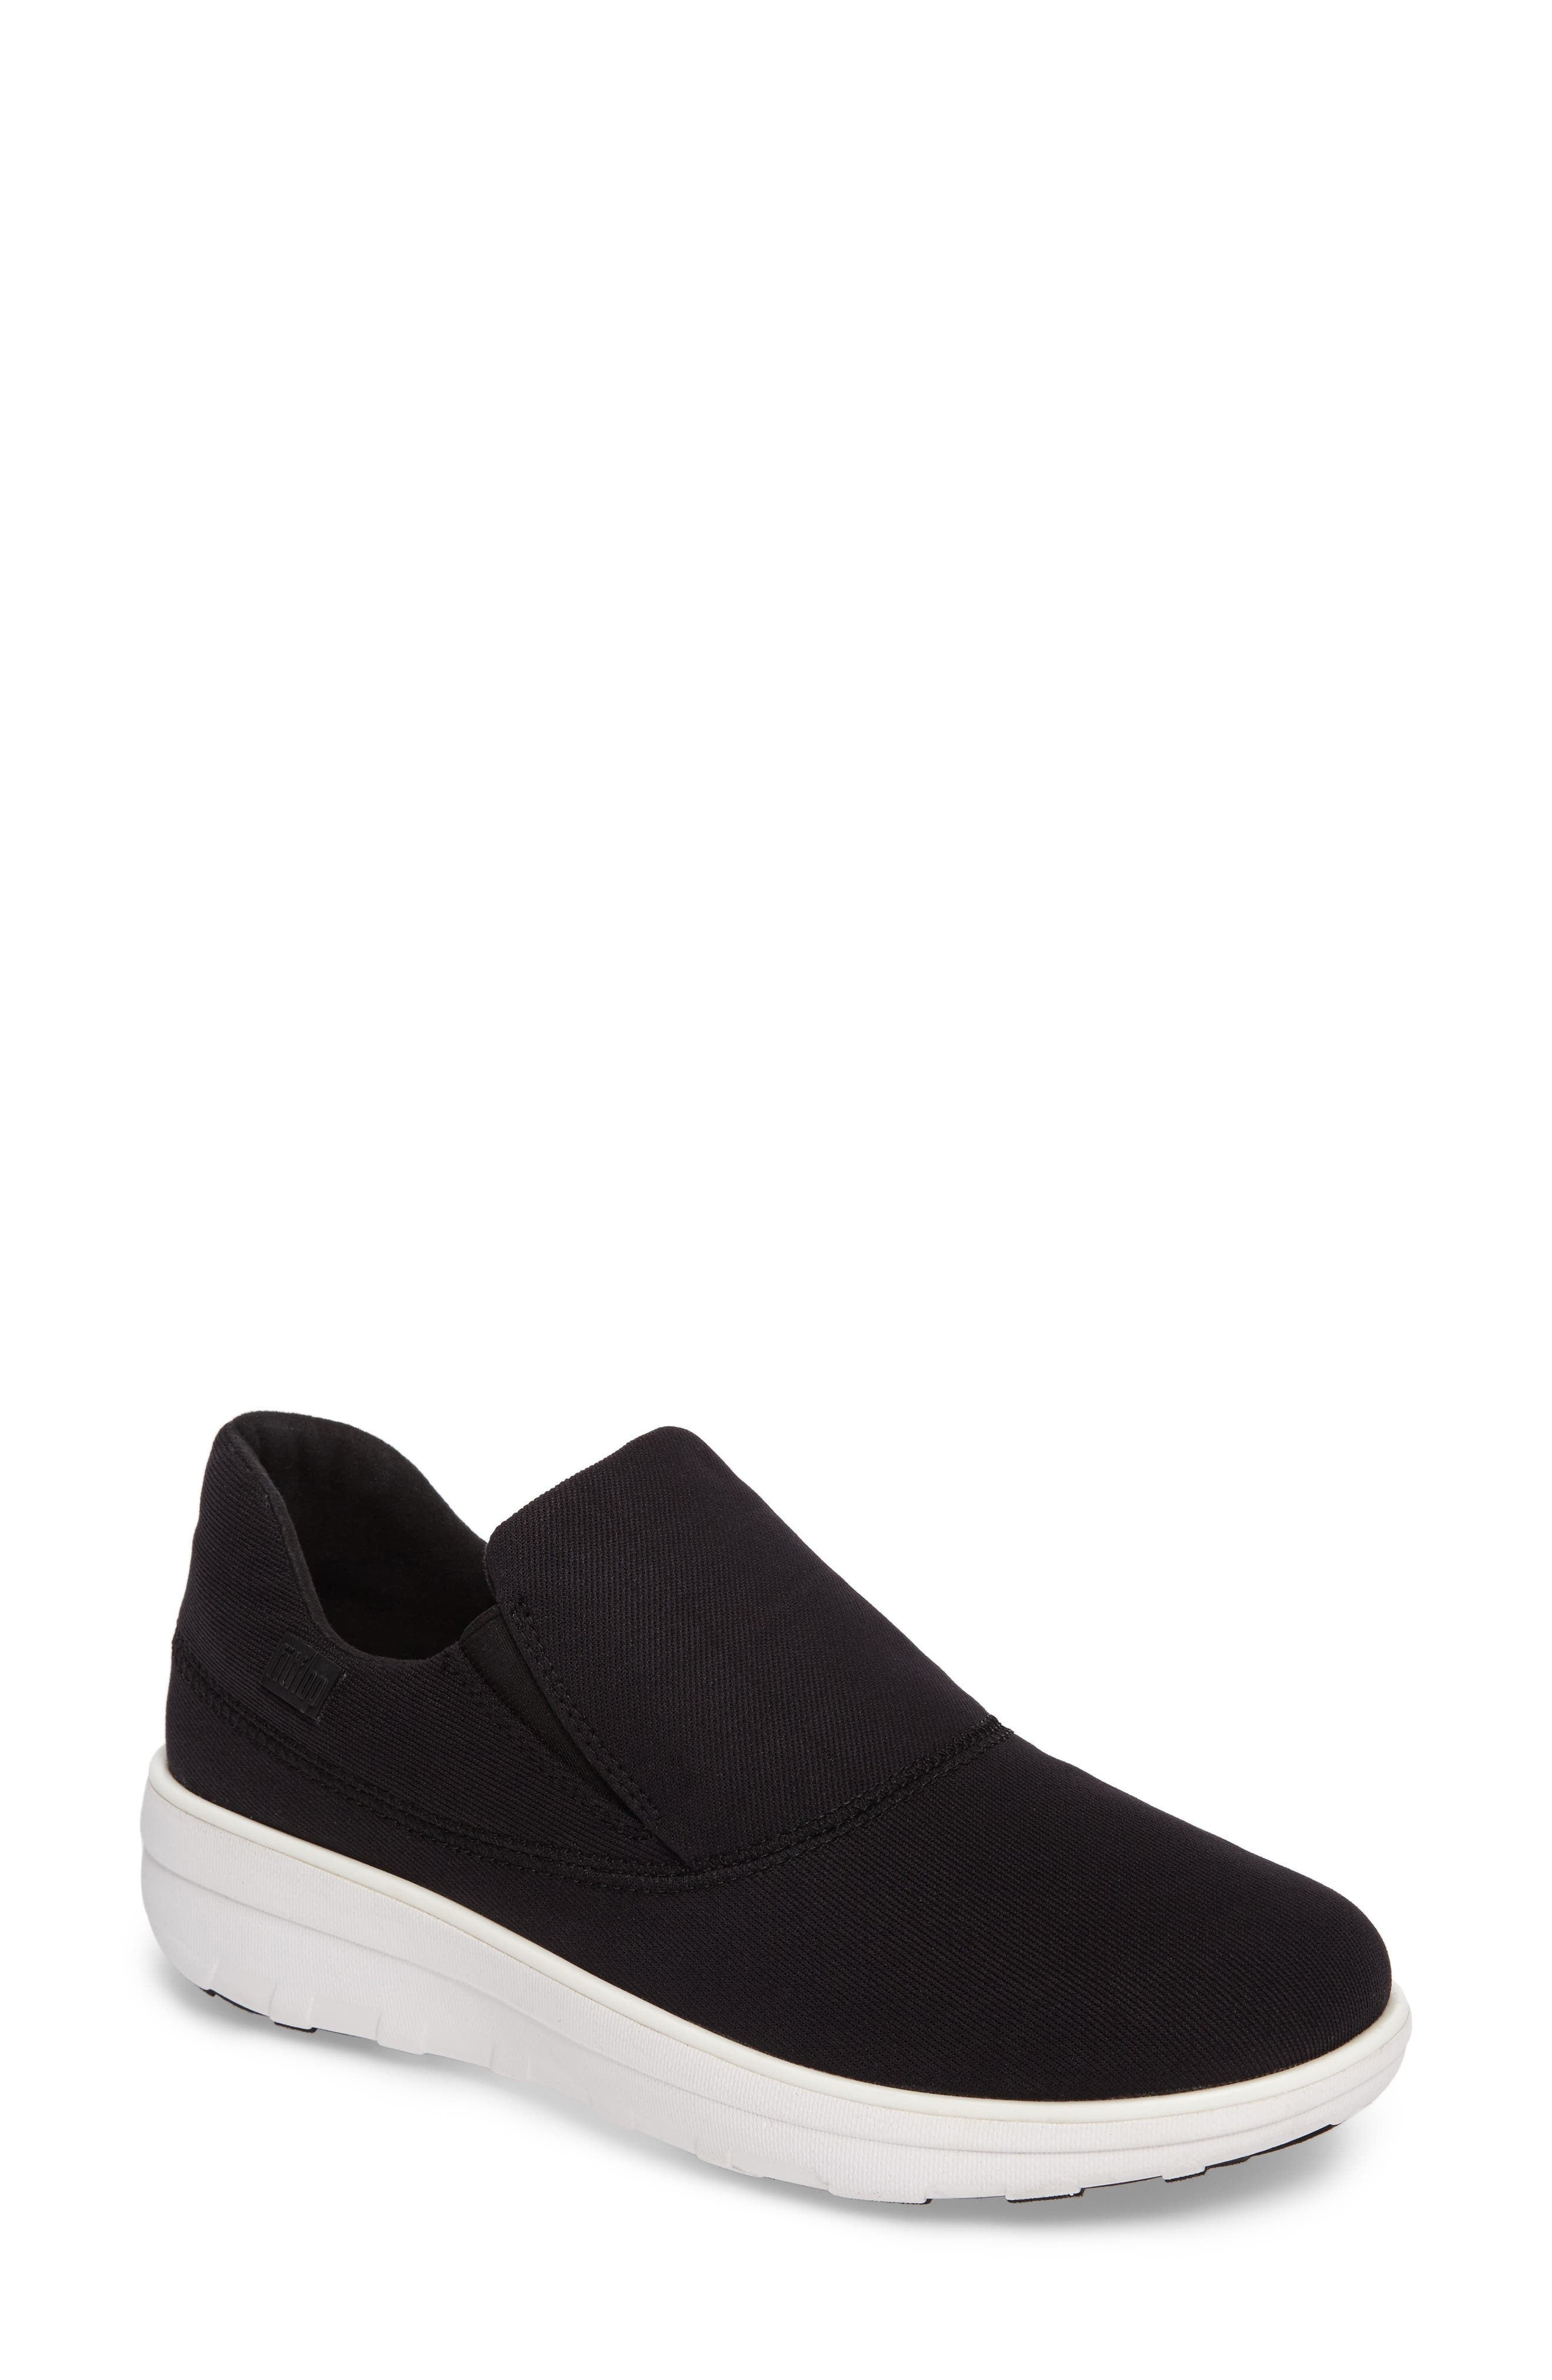 Loaff Platform Slip-On Sneaker,                             Main thumbnail 1, color,                             Black Fabric